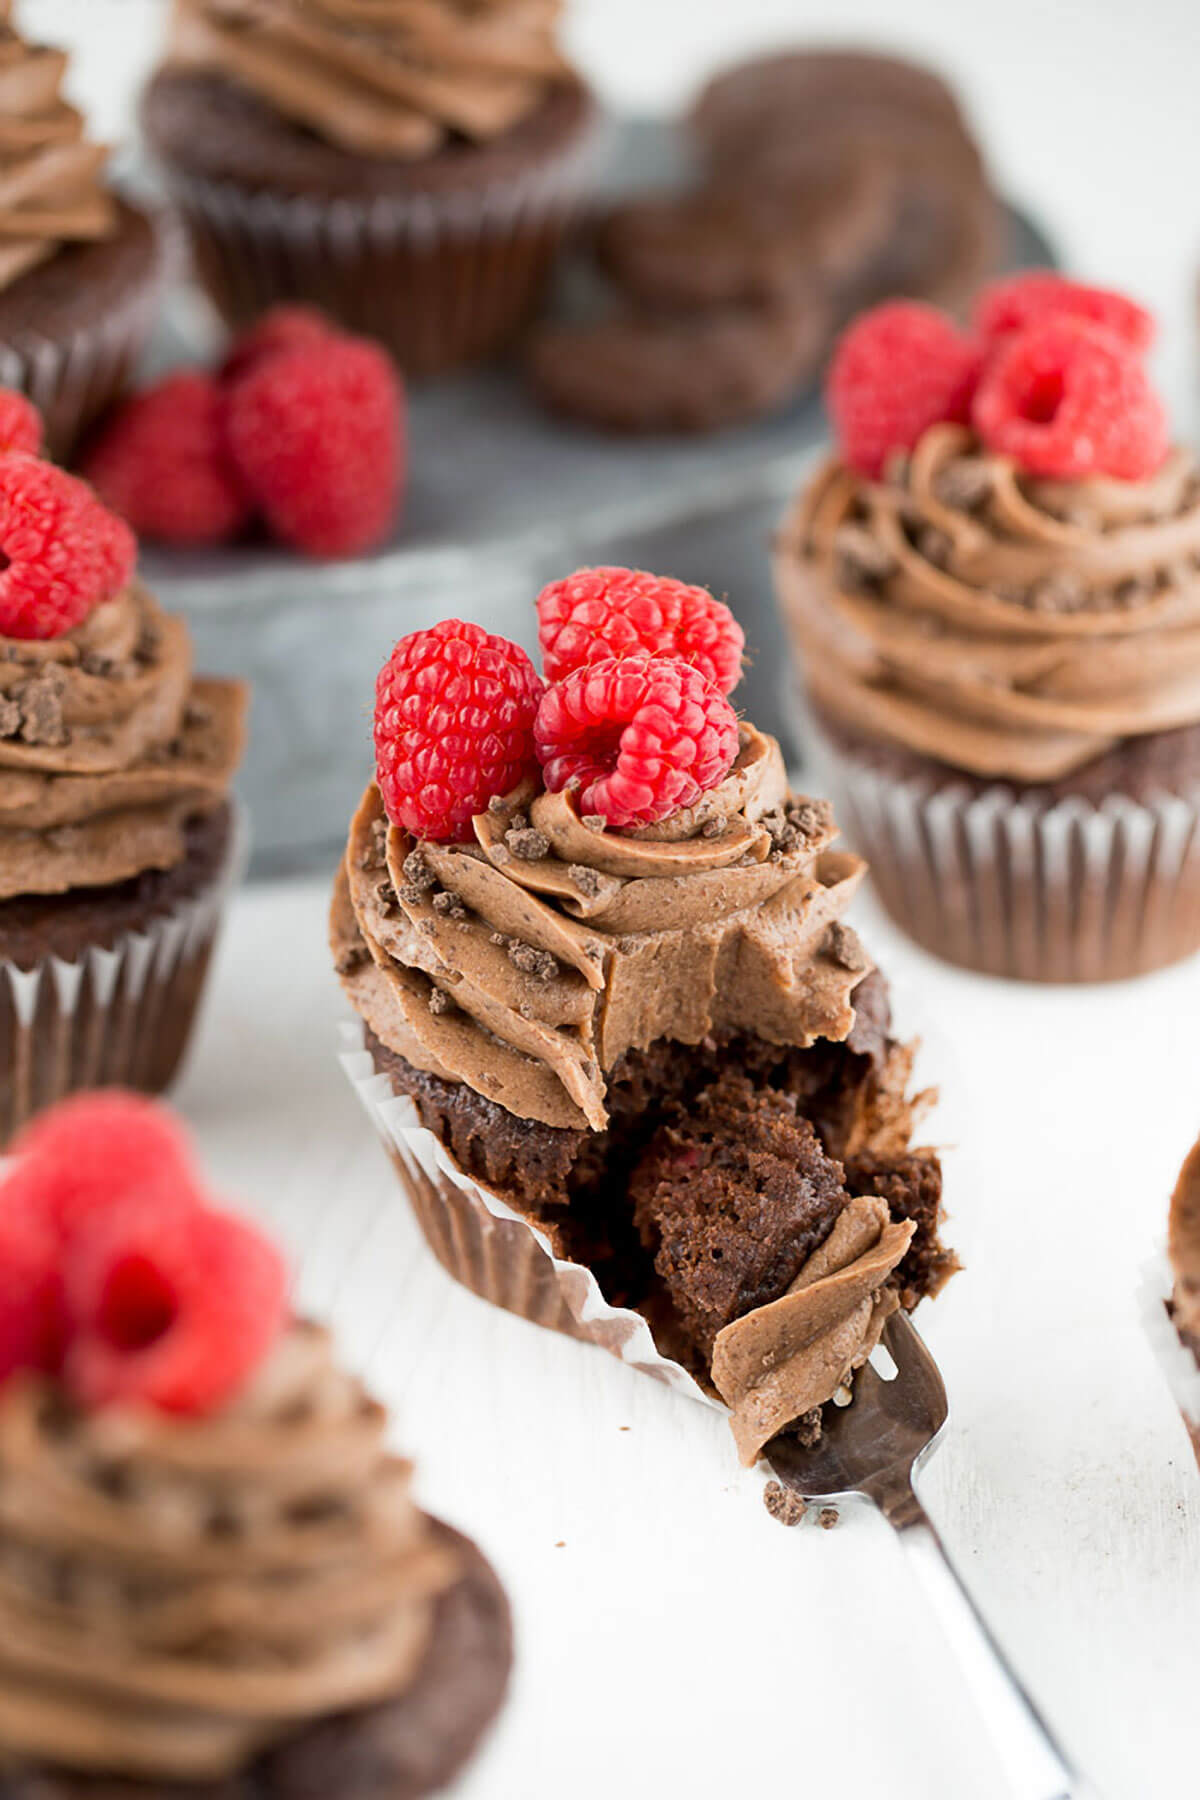 Raspberry Thin Mint Cupcakes